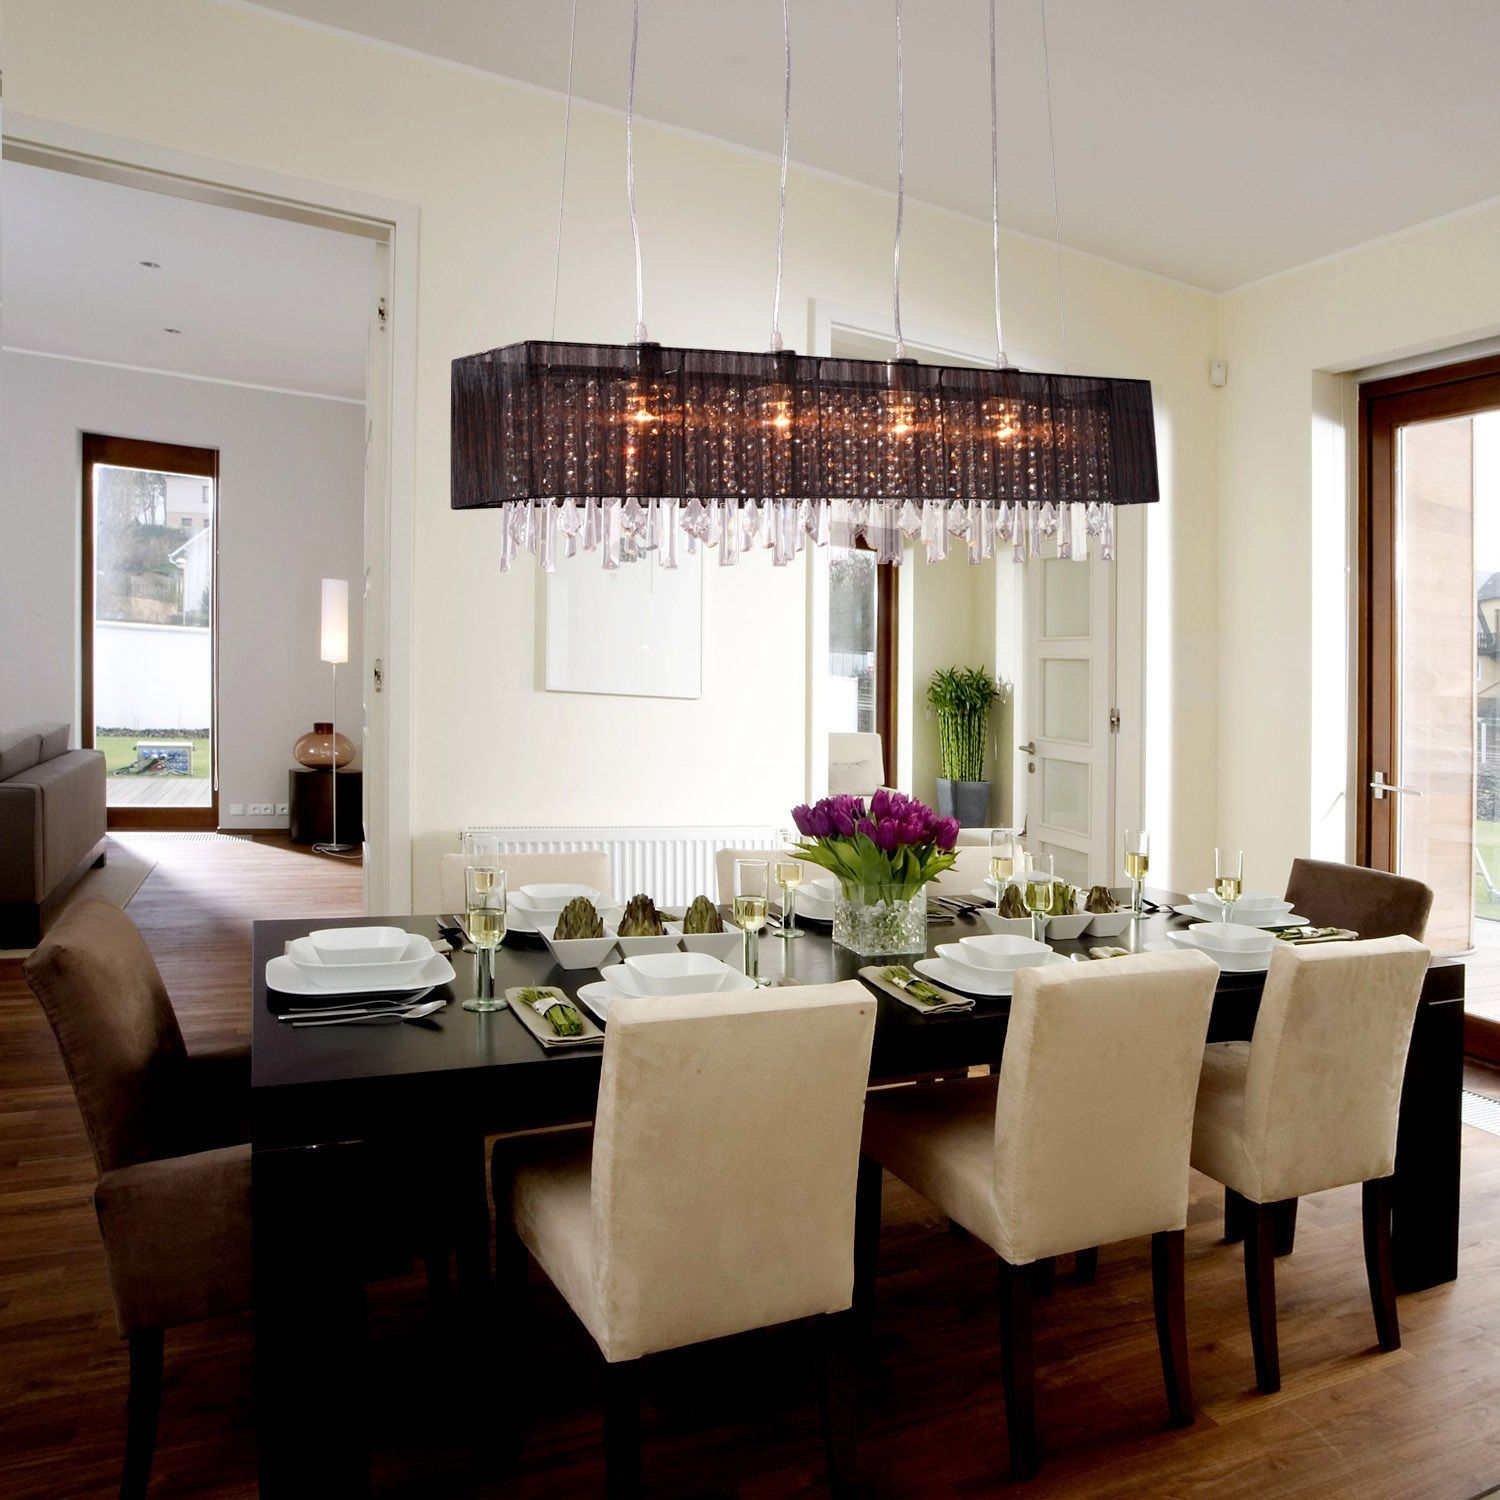 Dining Room Light Fixture Ideas  Interior Paint Color Trends Magnificent Dining Room Hanging Lights Inspiration